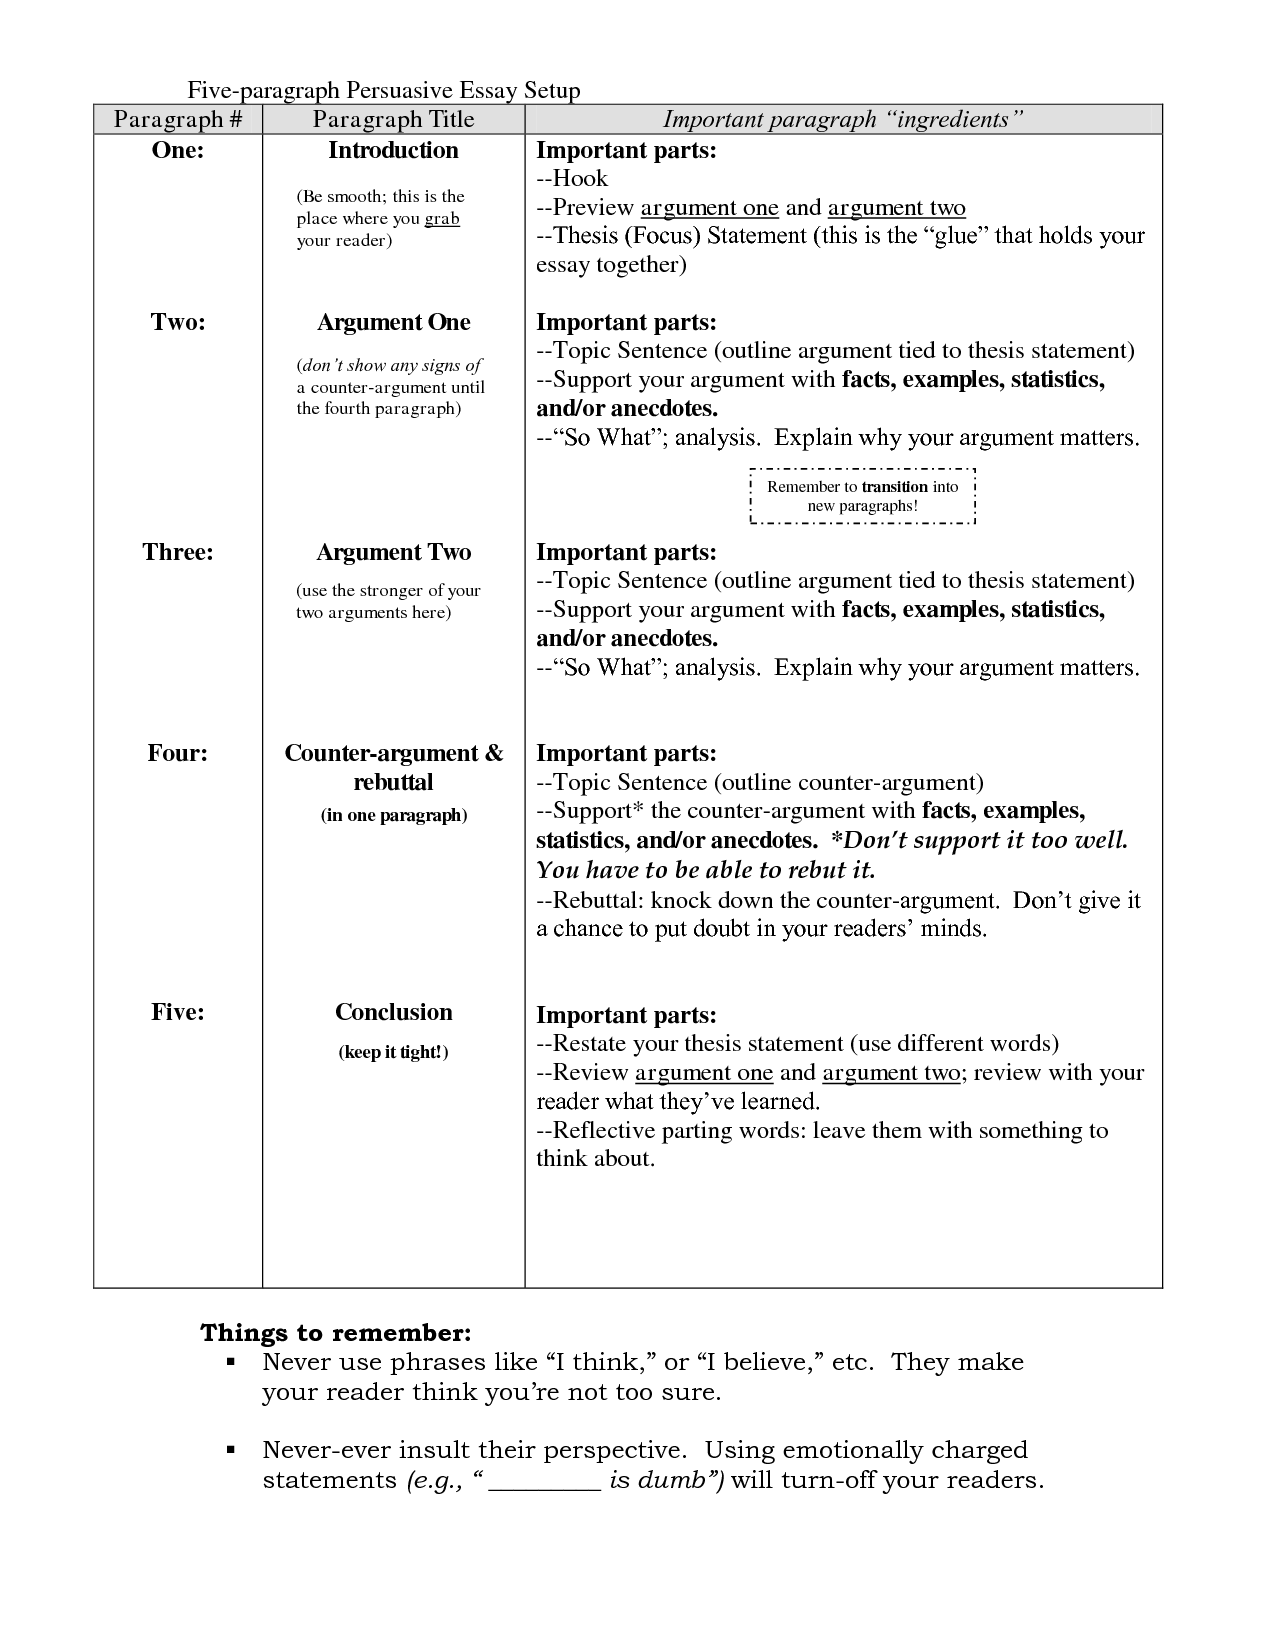 018 One Paragraph Essay How Important Is Thesis Statement In An To Write Introduction For Informative N5psytative About Book Pdf Yourself Examples Start Analytical Opinion End Staggering Argumentative Your Stop Bullying Example Full